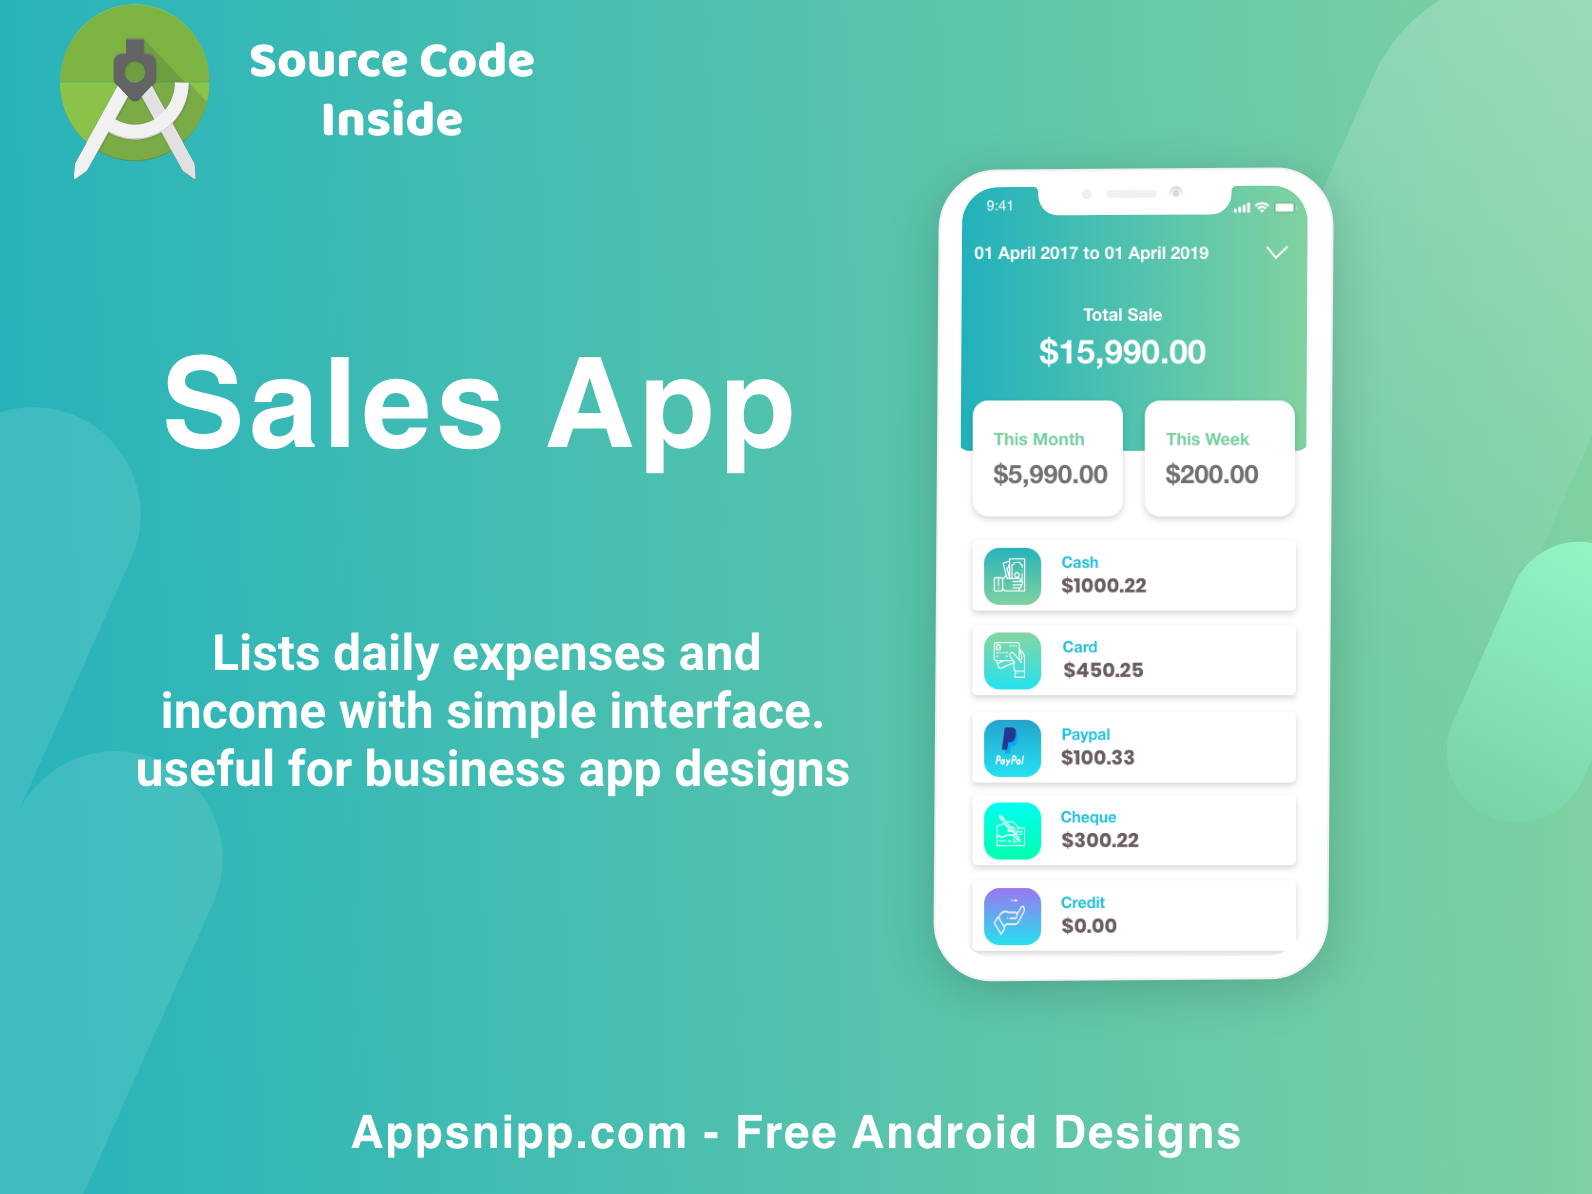 Realtime sales app ui design with source code for android free code free app appsnipp illustration minimal ios ux ui design app modern android app